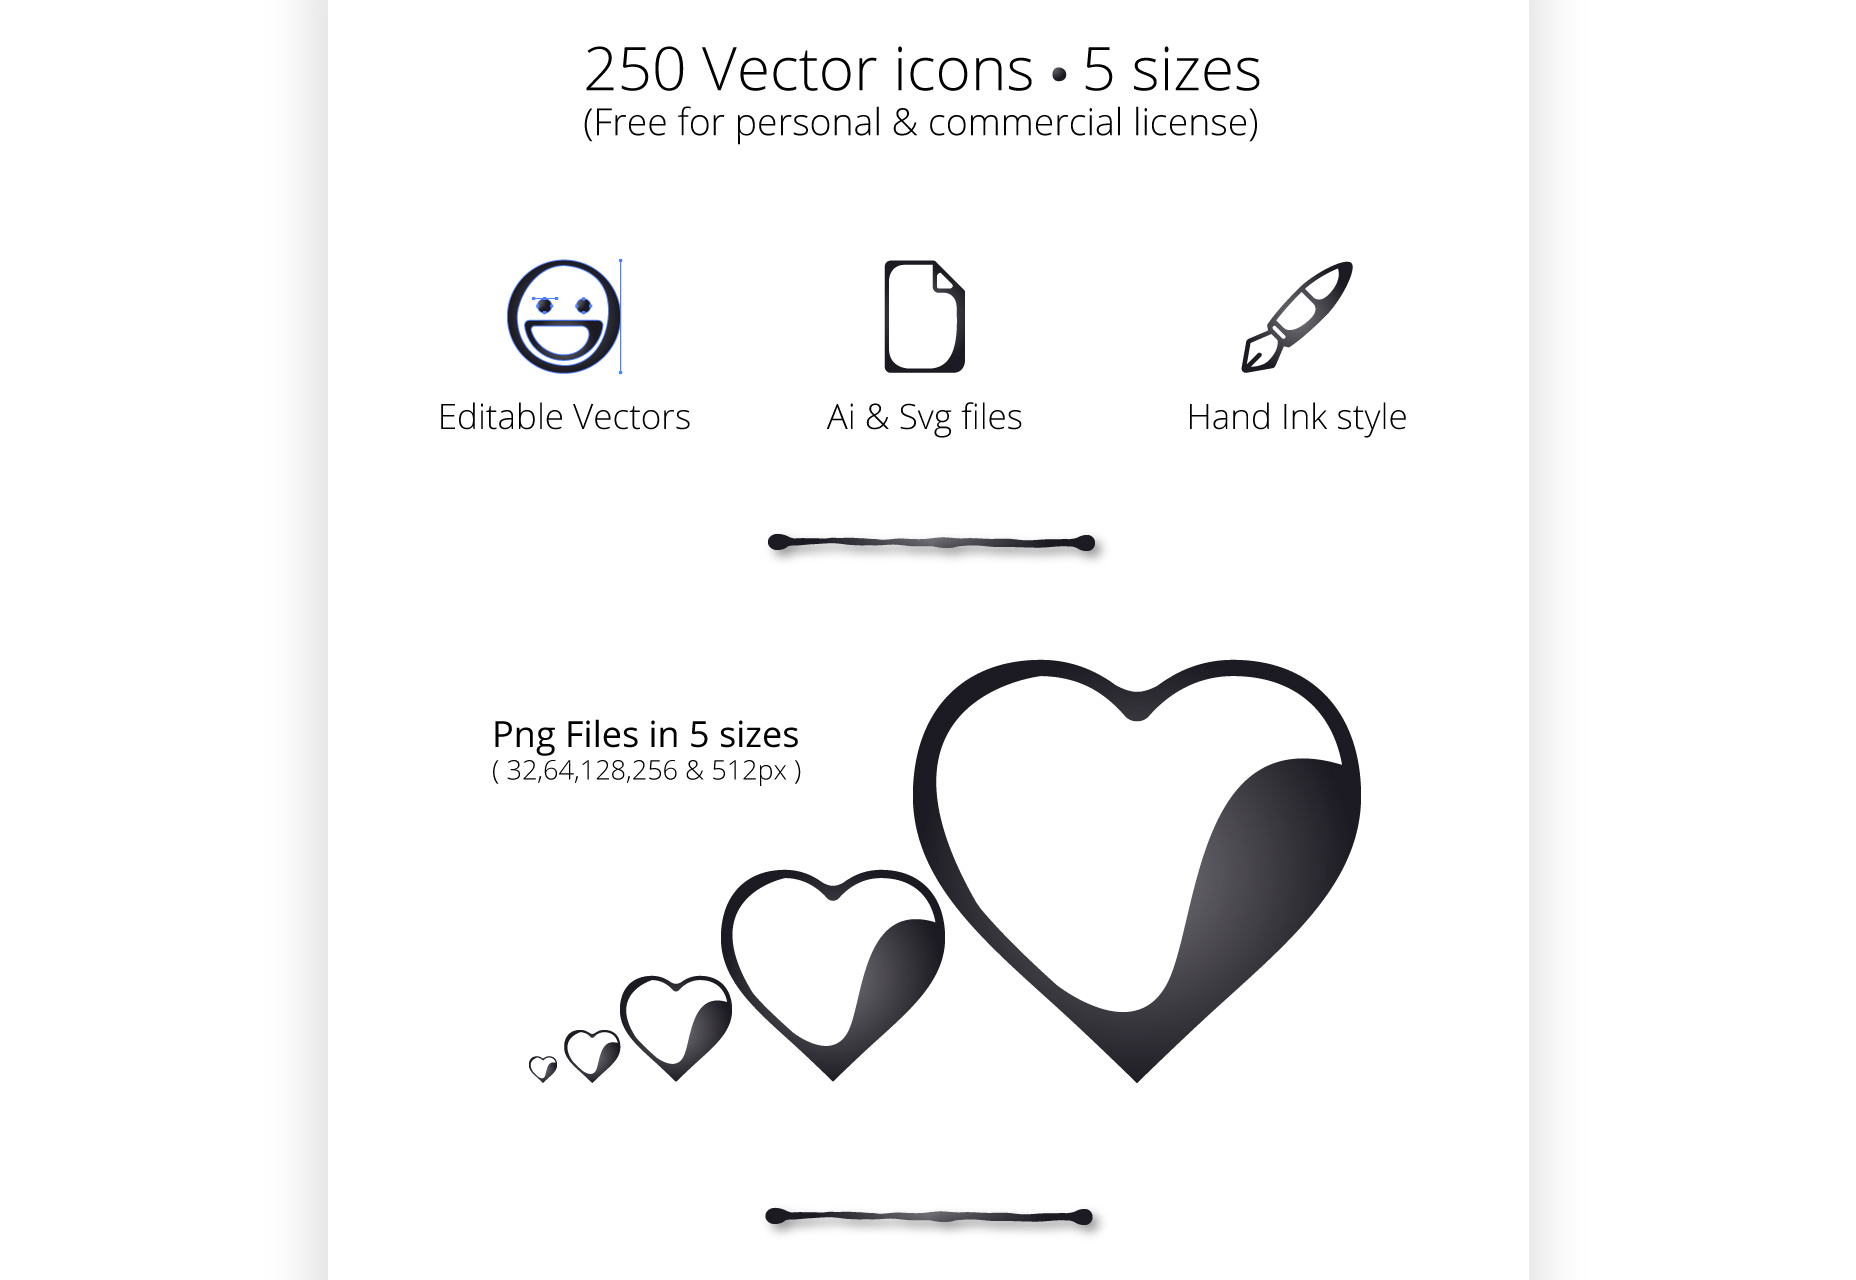 Inkallicons: Vector Ink Line Icons